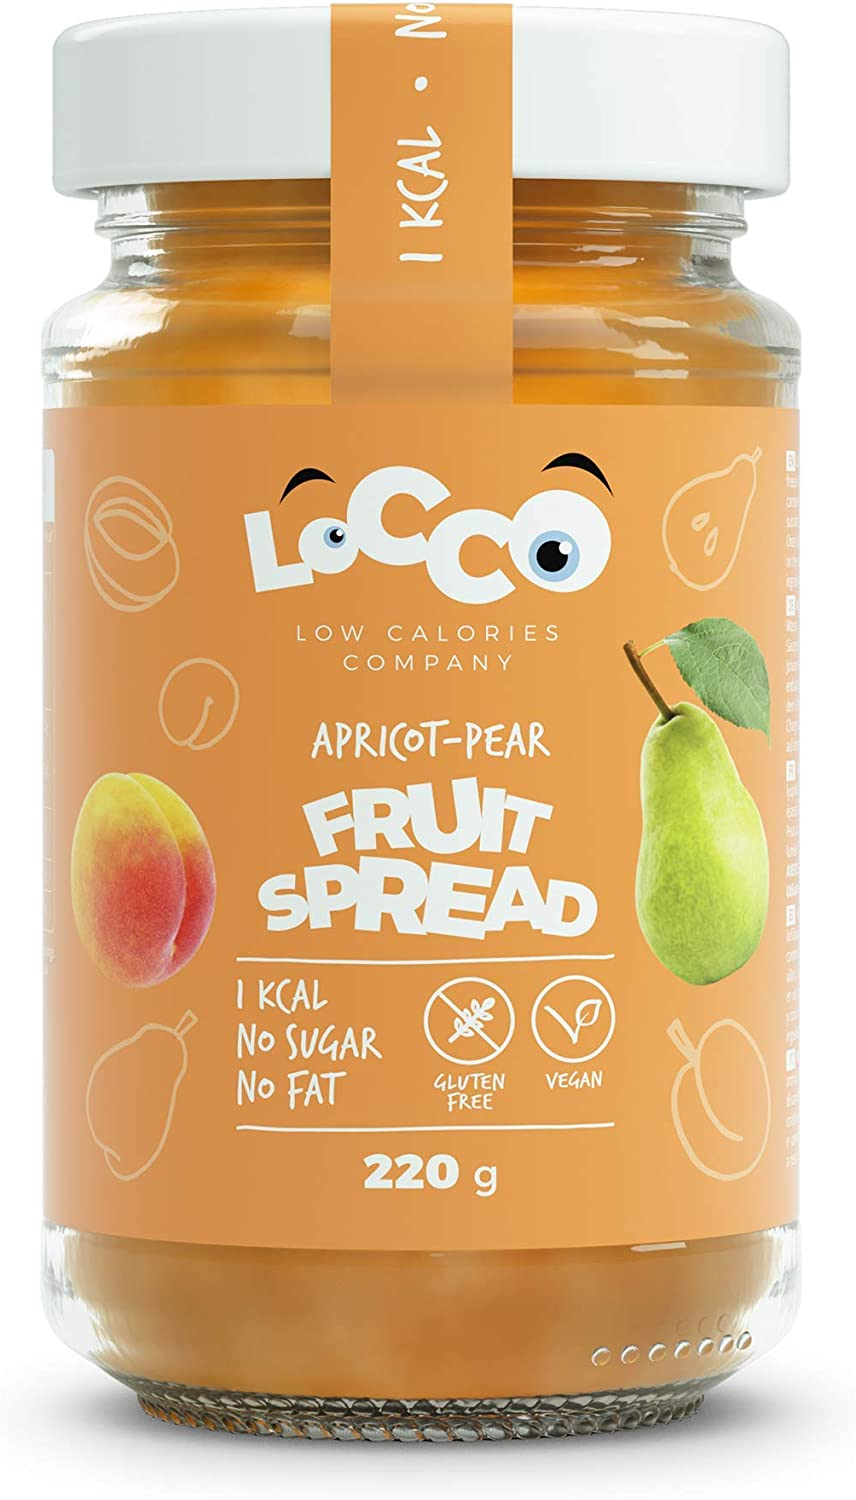 Locco Low Calorie Apricot Pear Spread 220g Slimming Food For Diabetics On Keto Paleo Dukan Diet Amazon Co Uk Health Personal Care